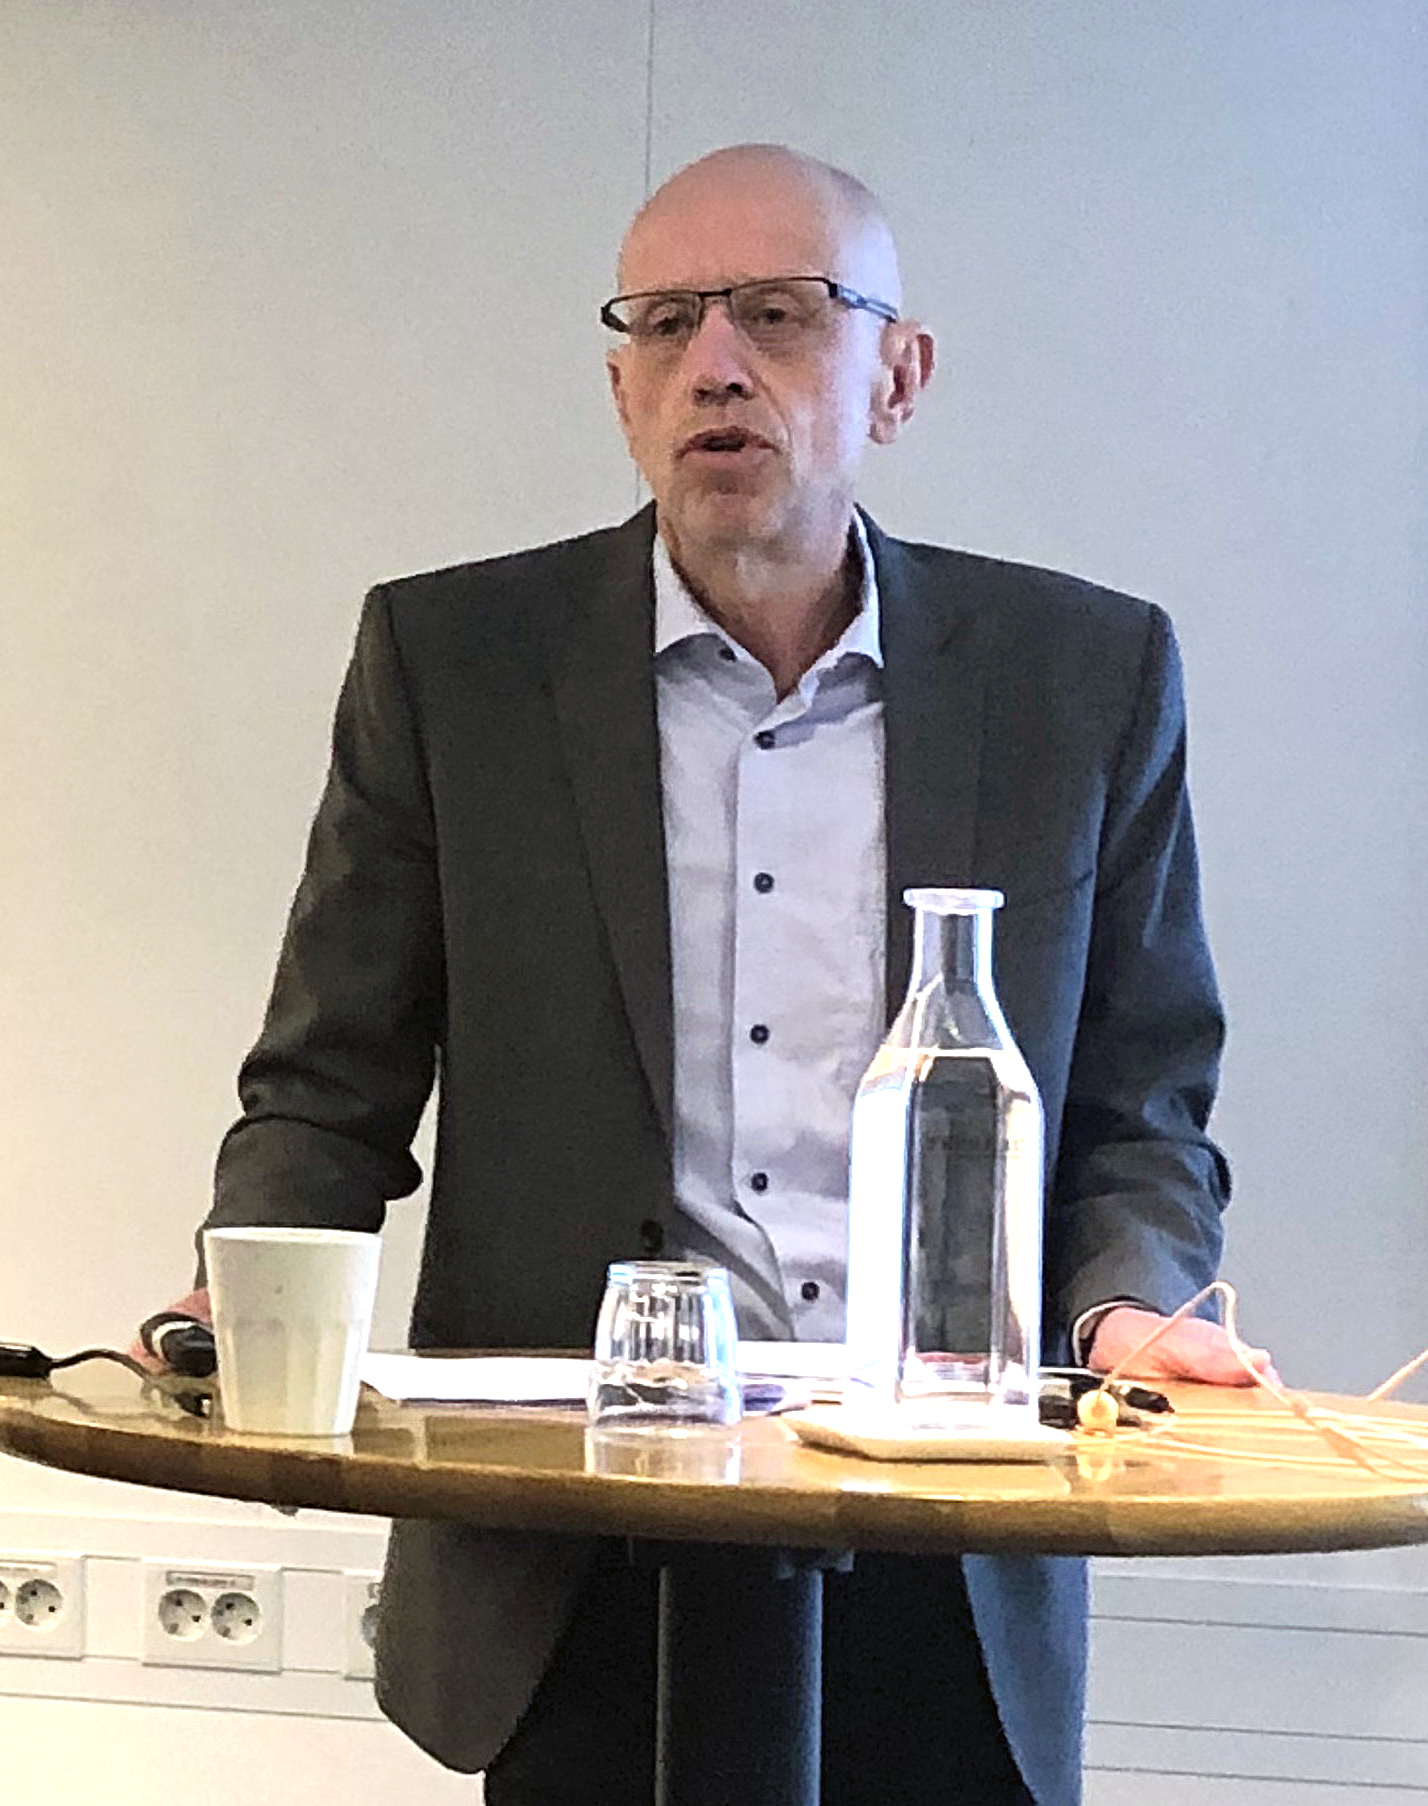 Michael Andersson